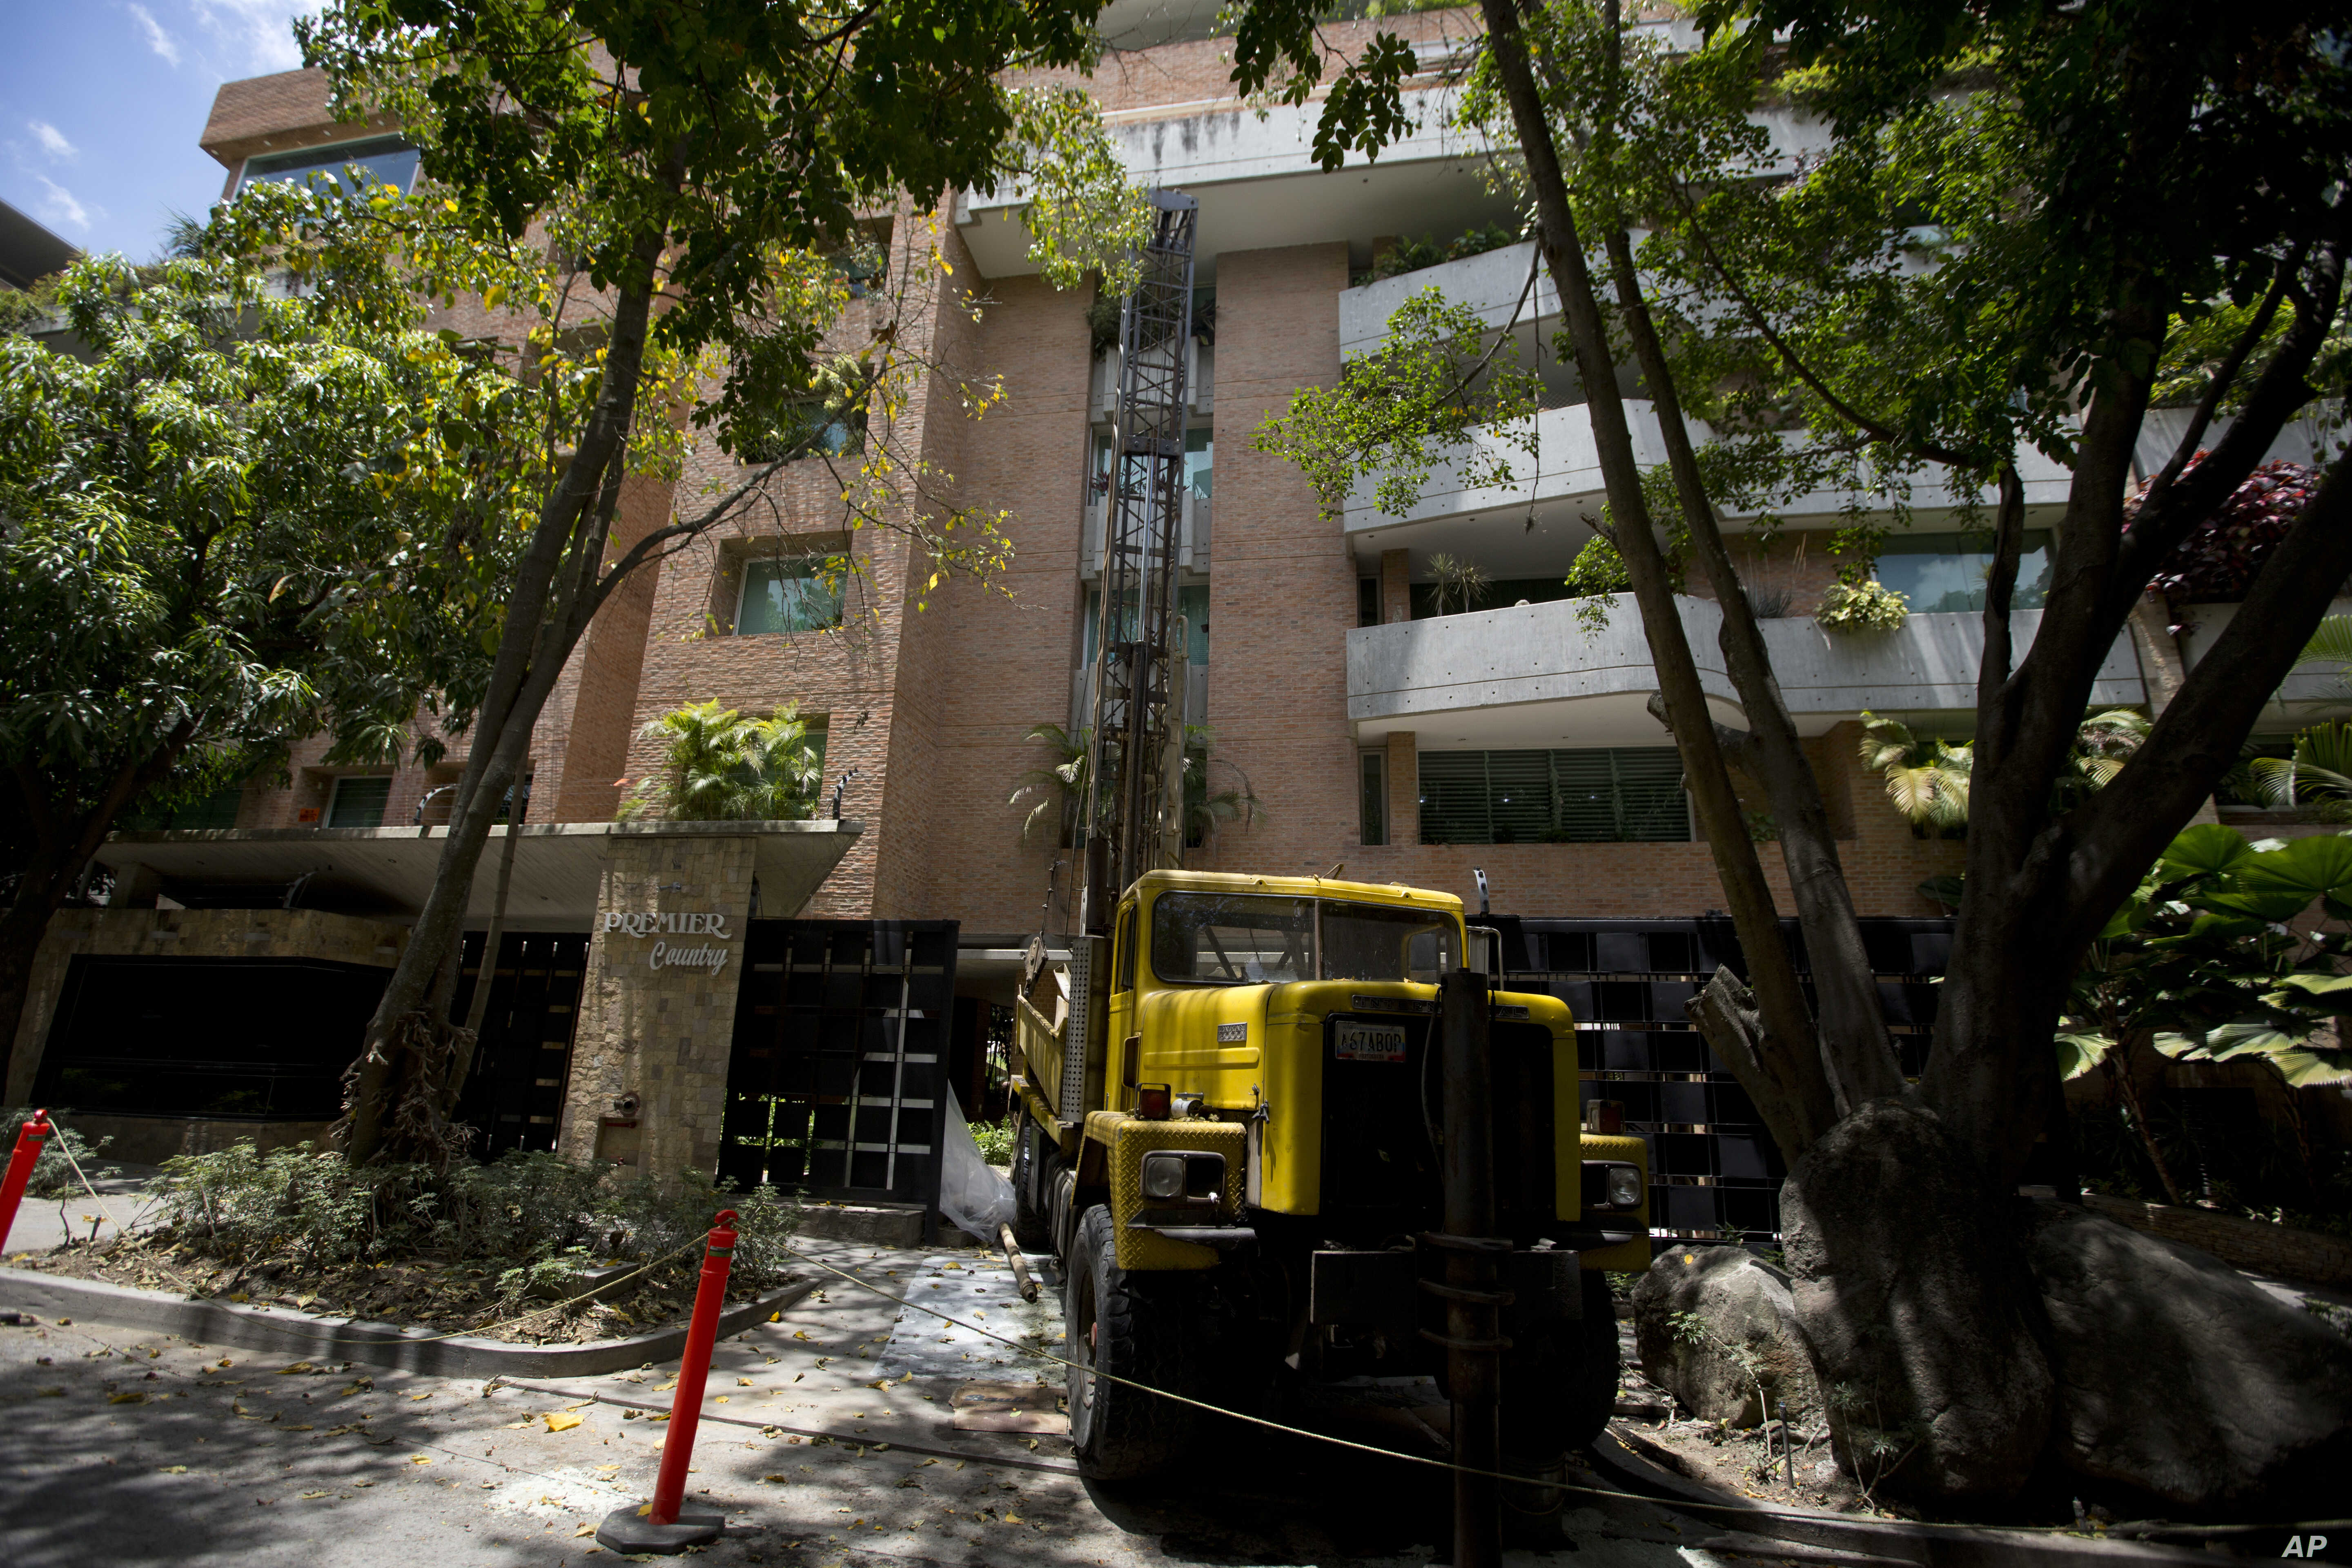 A drill creates a well during water shortages outside the luxury apartment complex in the Campo Alegre neighborhood of Caracas, Venezuela, May 31, 2018.